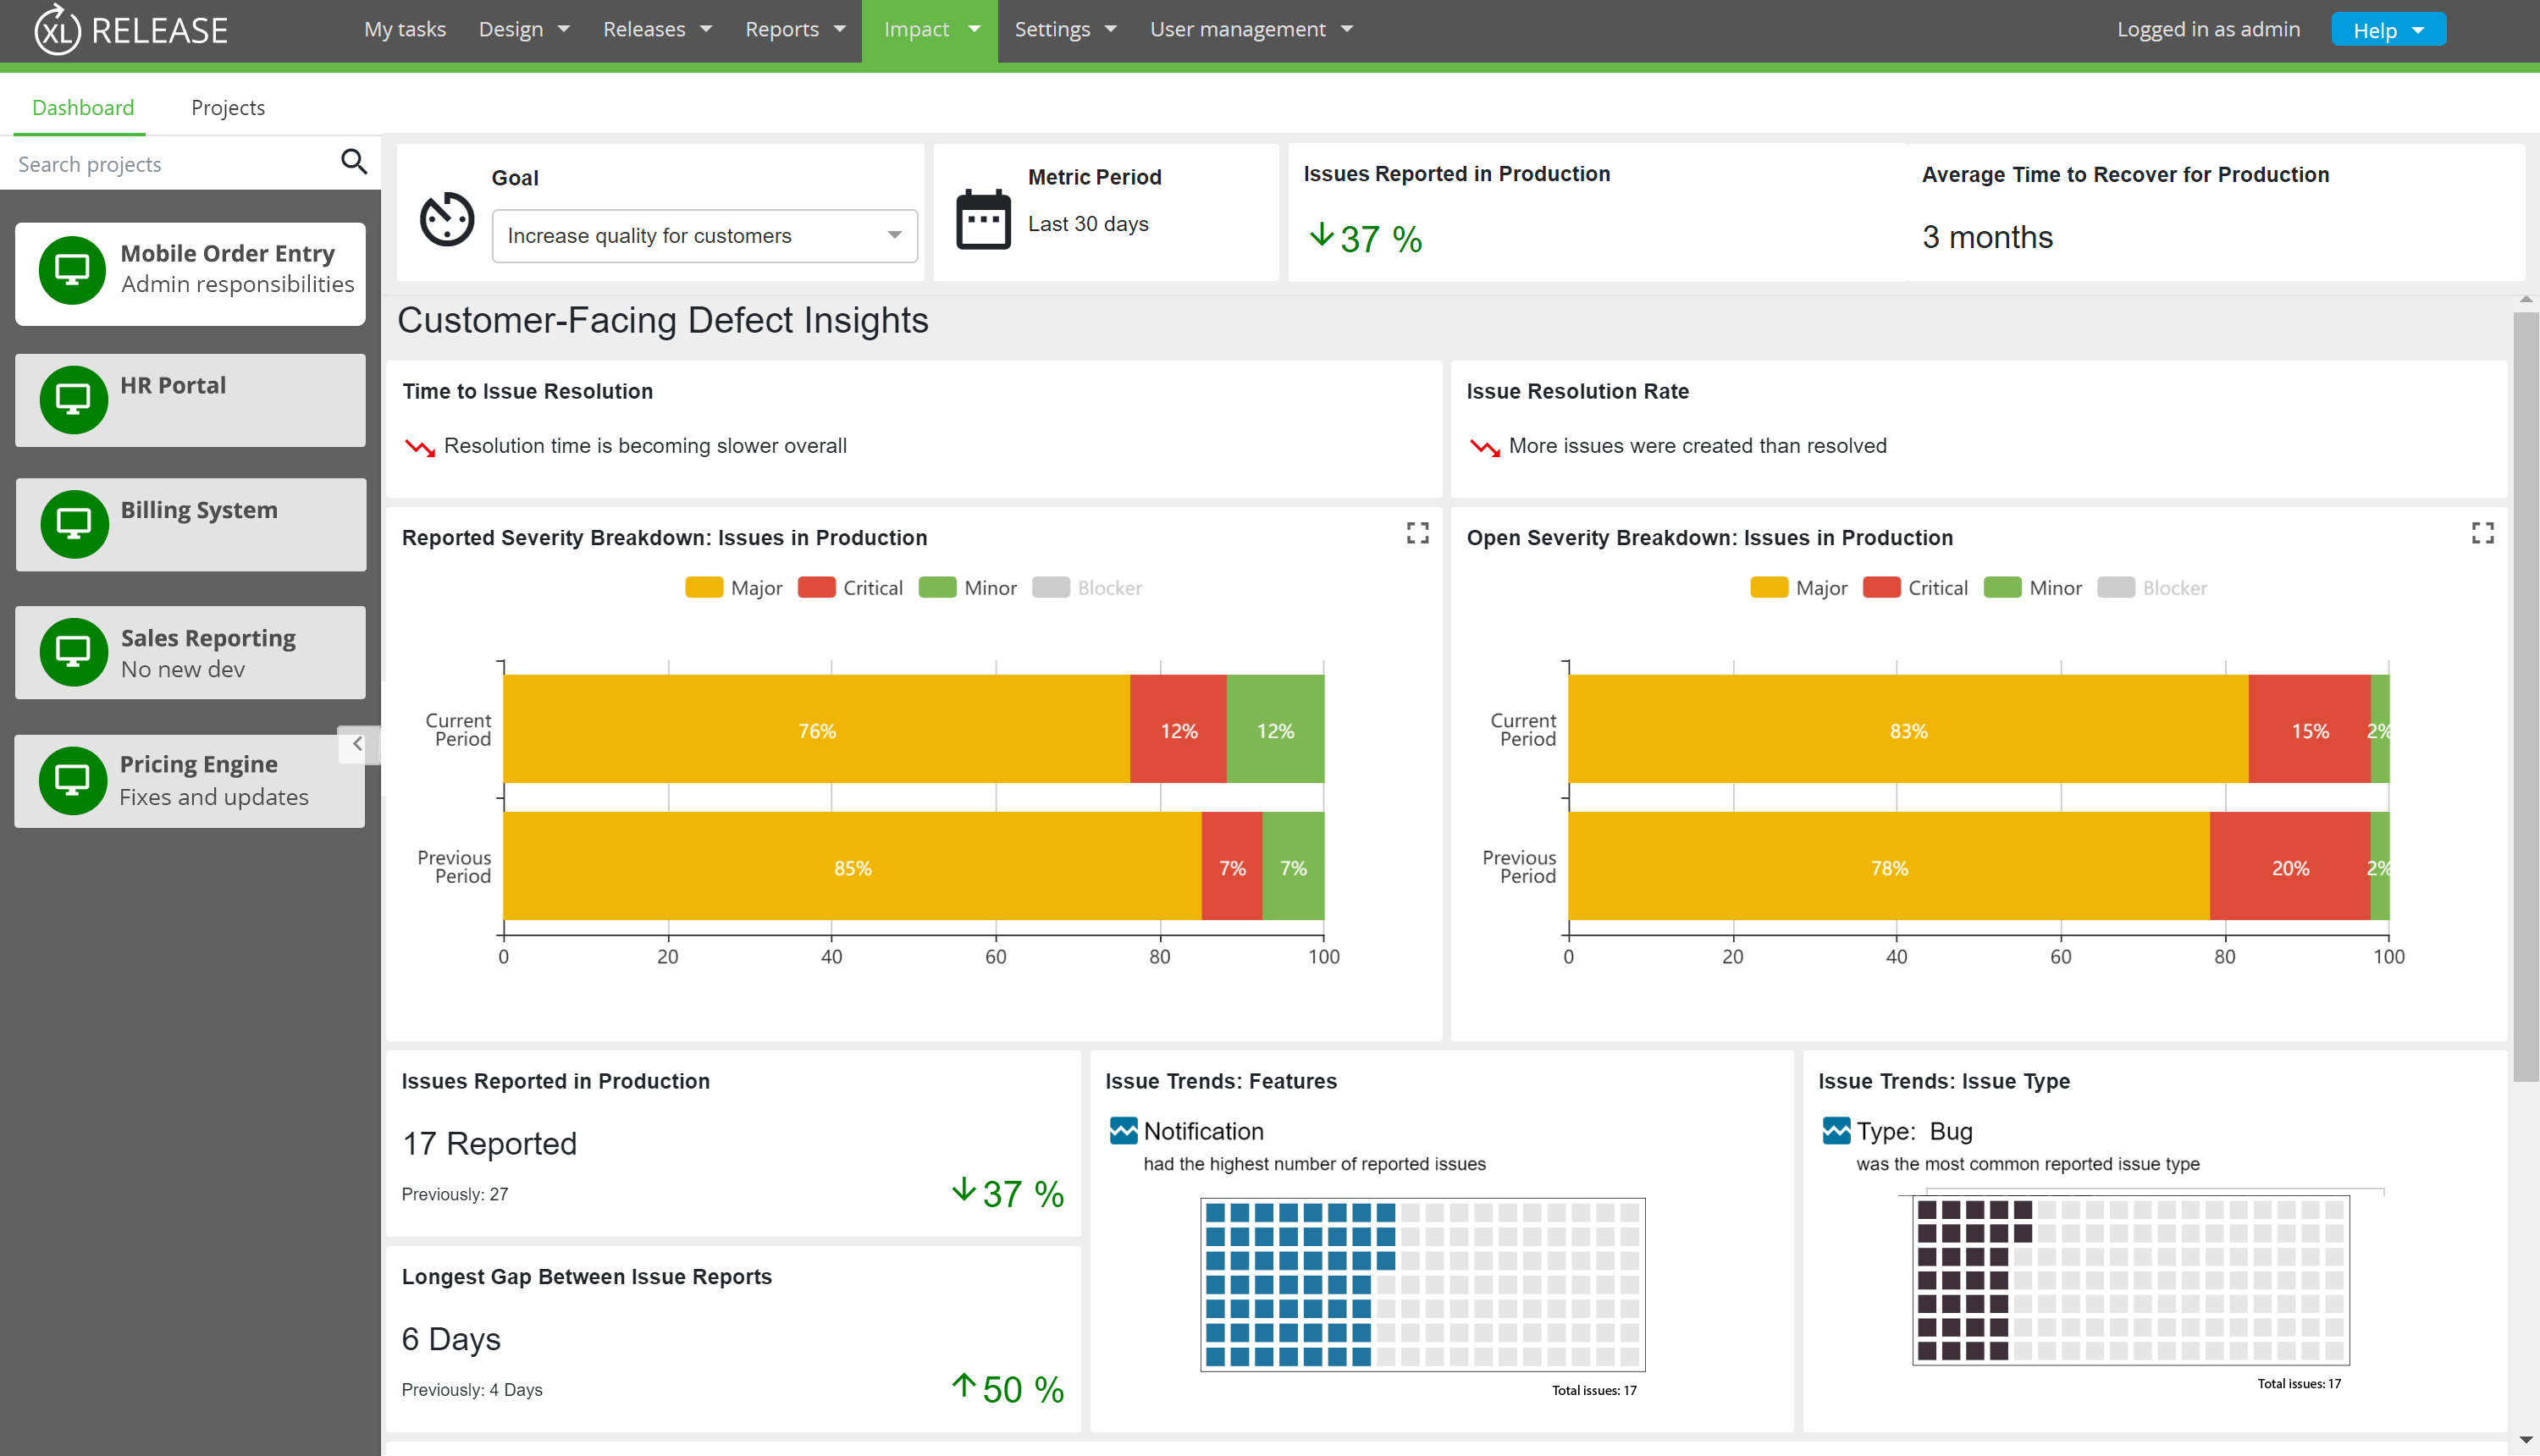 XL Impact is the first goal-based DevOps Intelligence solution that optimizes DevOps performance and measures the business impact of DevOps initiatives